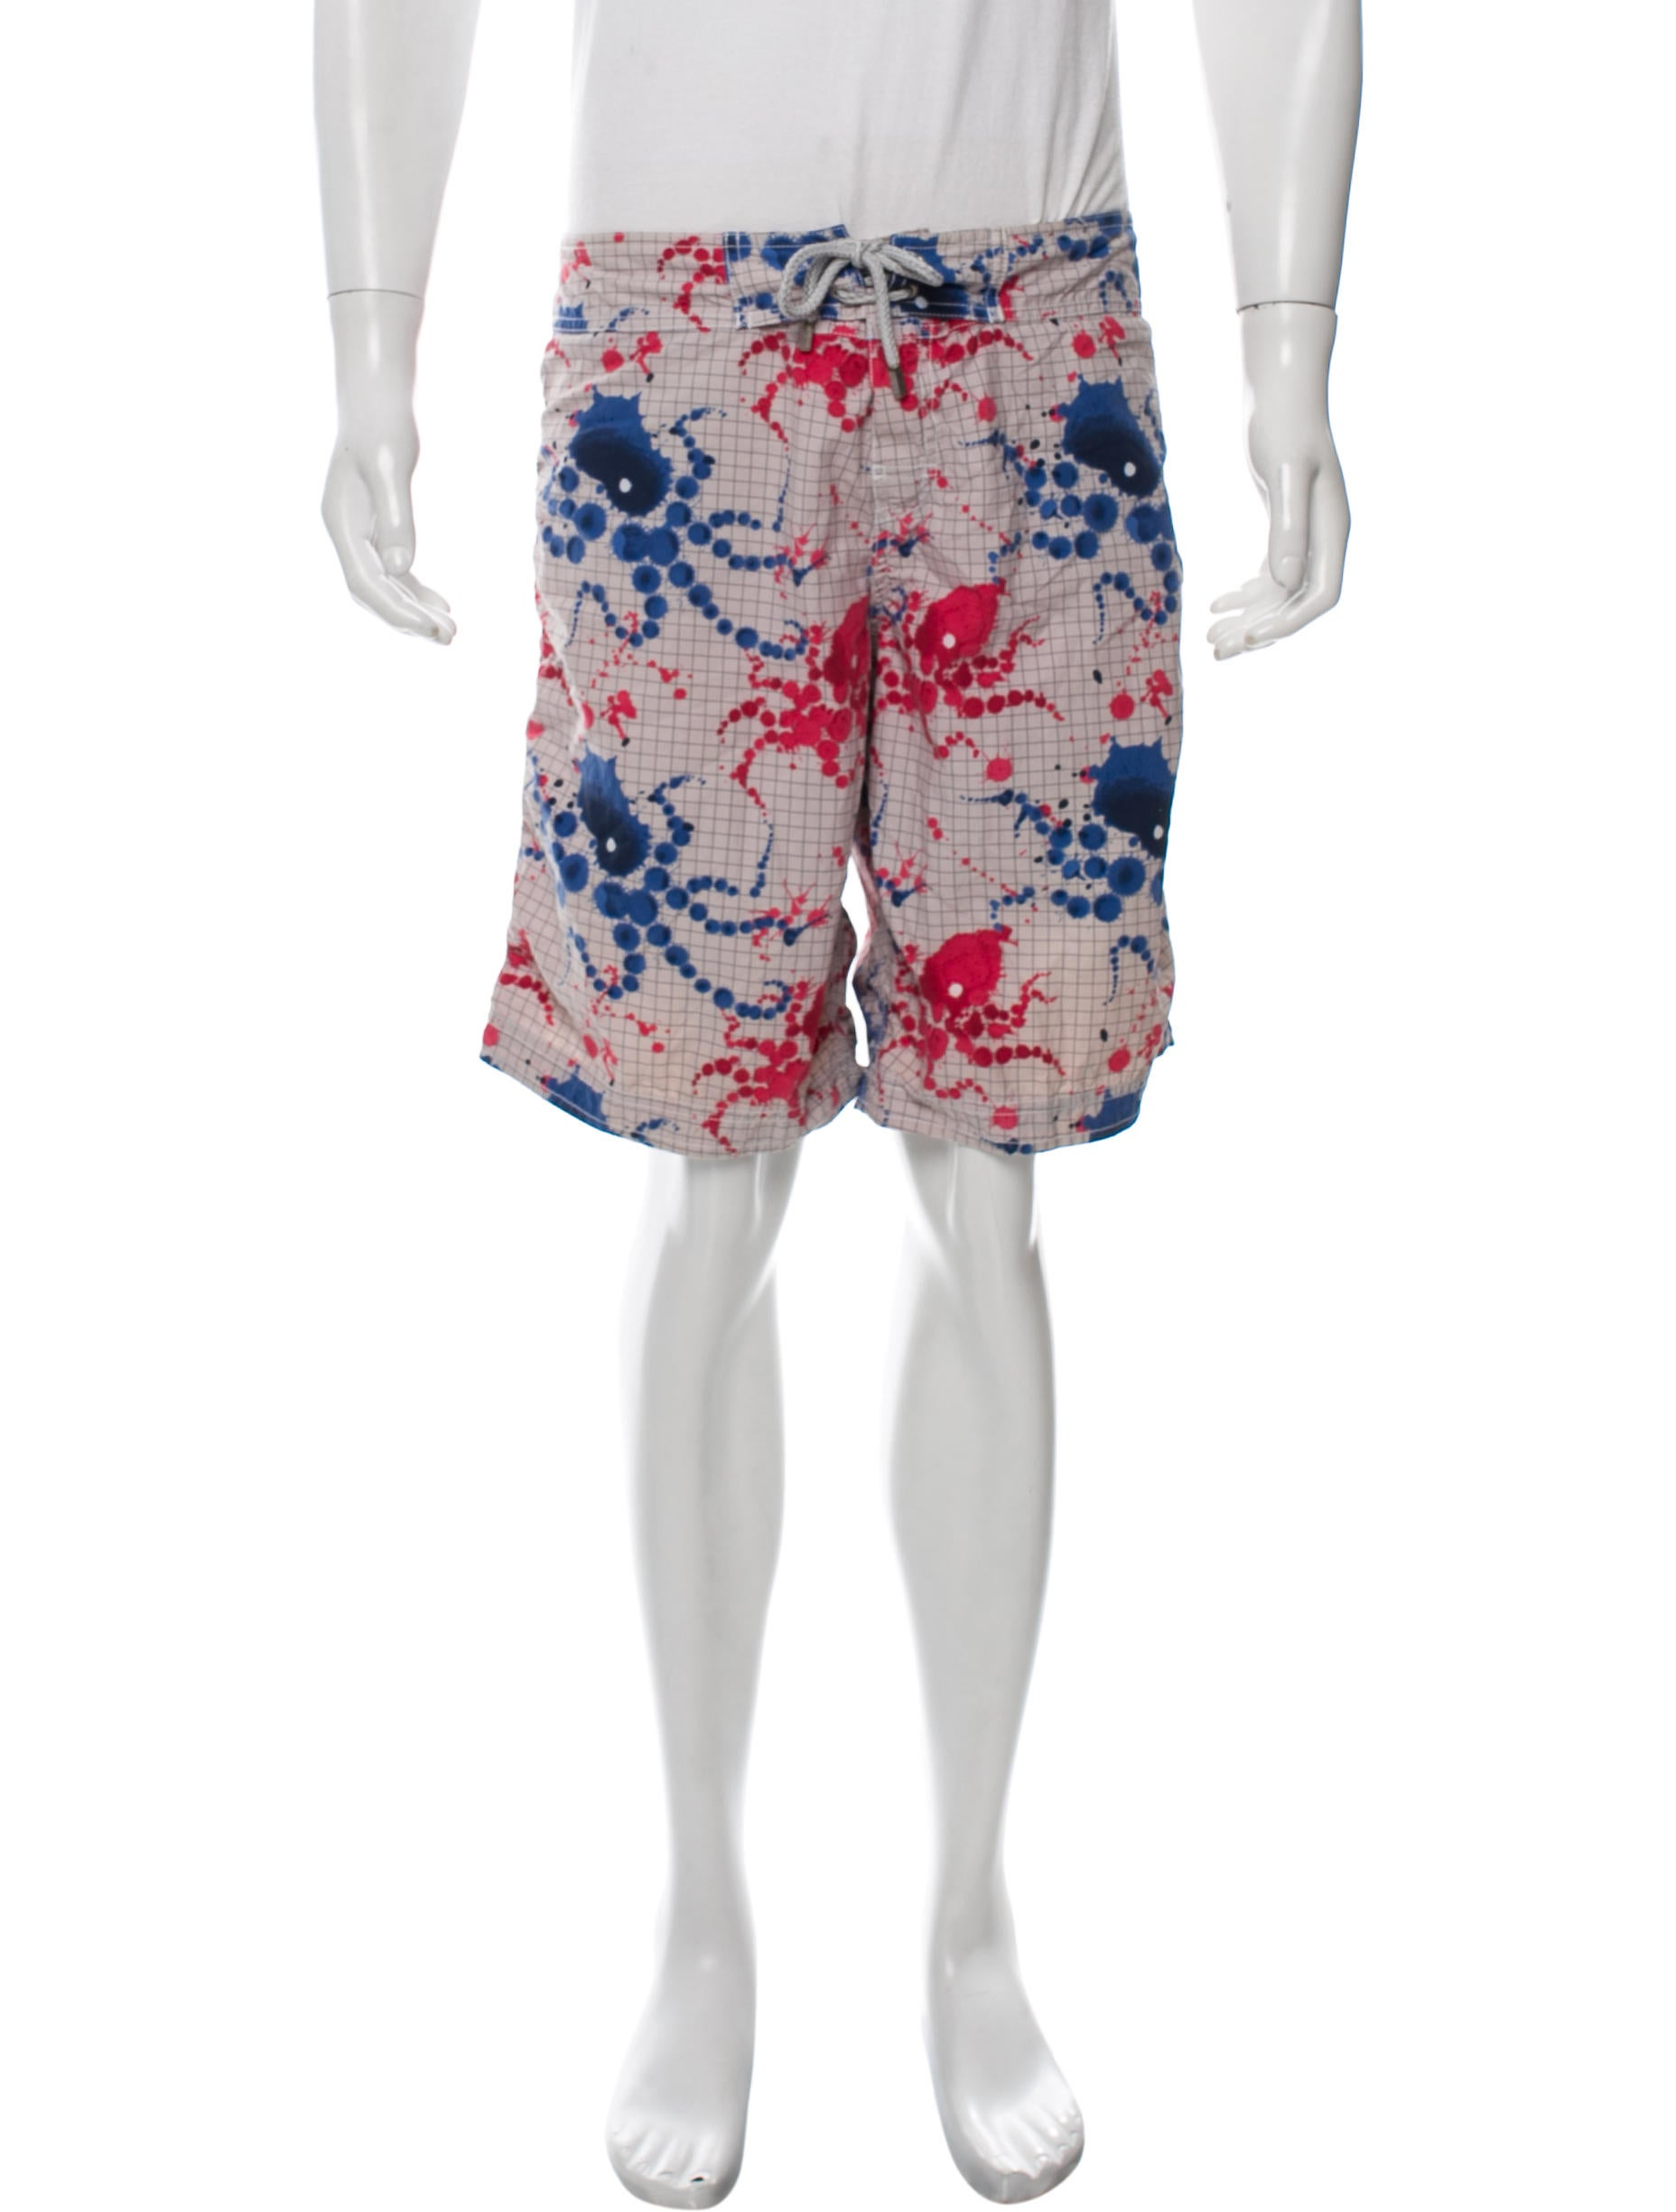 PAINT BOYS 2 NEW WITH TAGS AUTHENTIC VILEBREQUIN SWIM TRUNKS // SHORTS